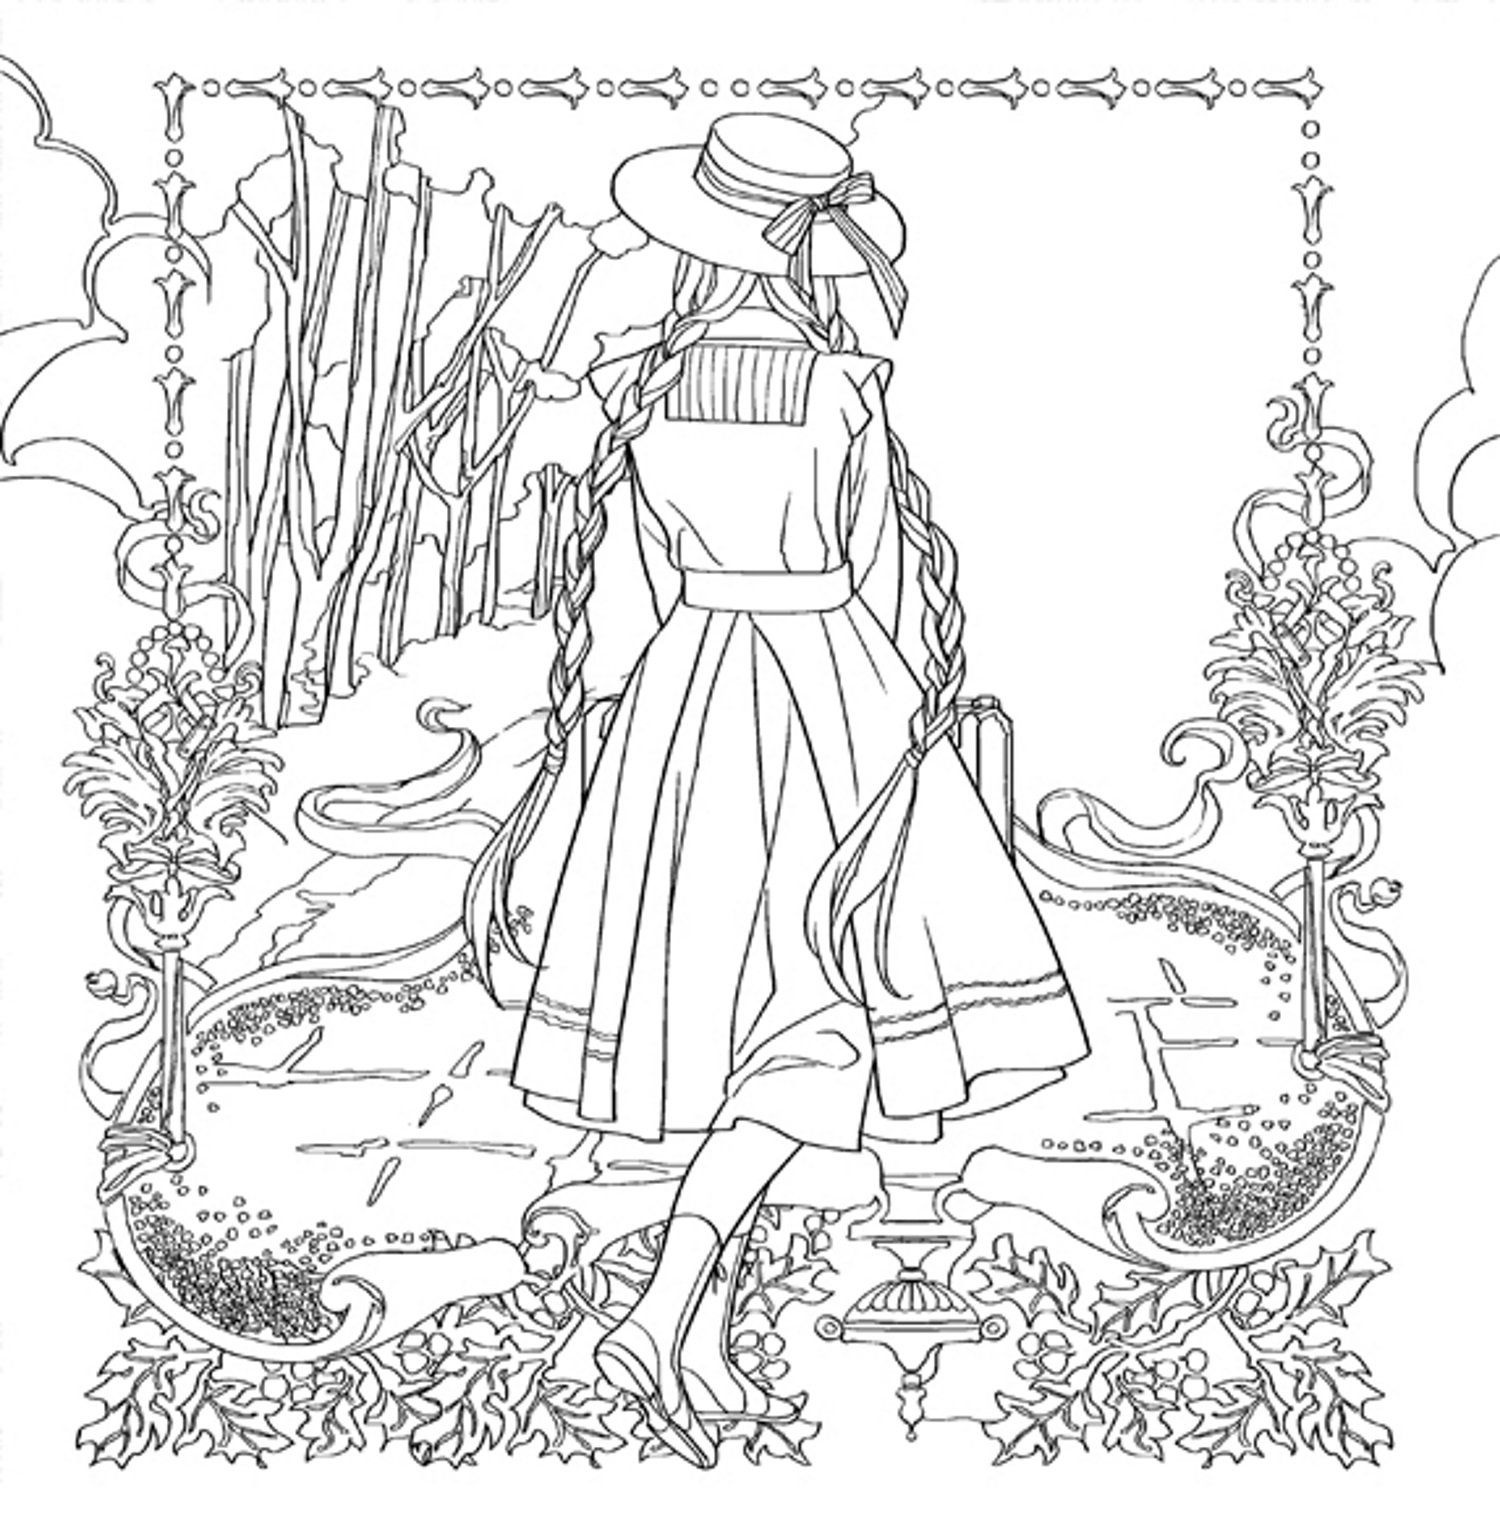 Sci Fi Coloring Pages At Getcolorings